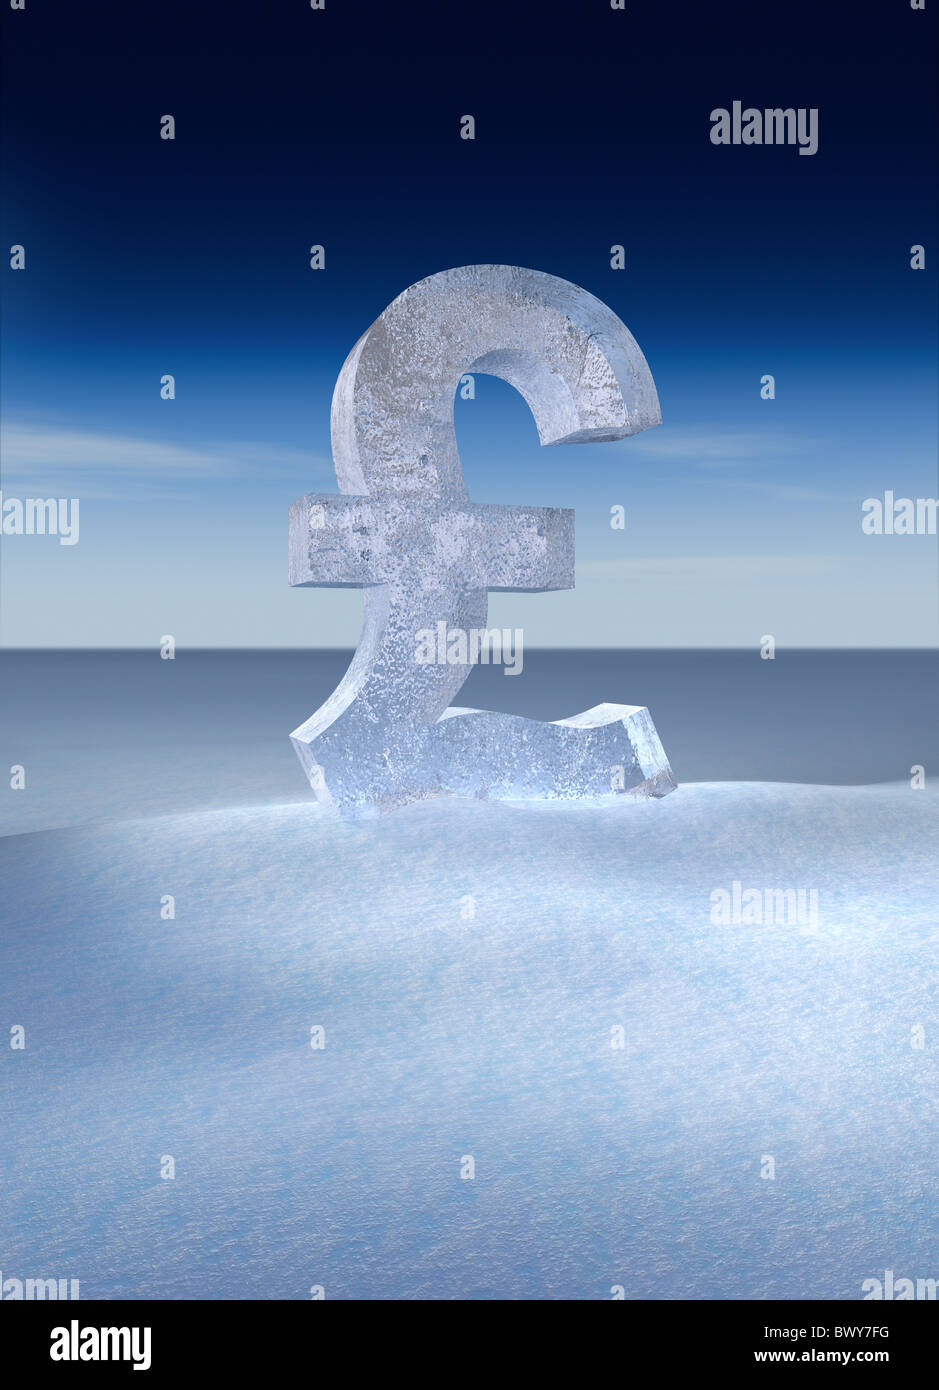 British pound currency symbol made out of block of ice in winter british pound currency symbol made out of block of ice in winter landscape biocorpaavc Images